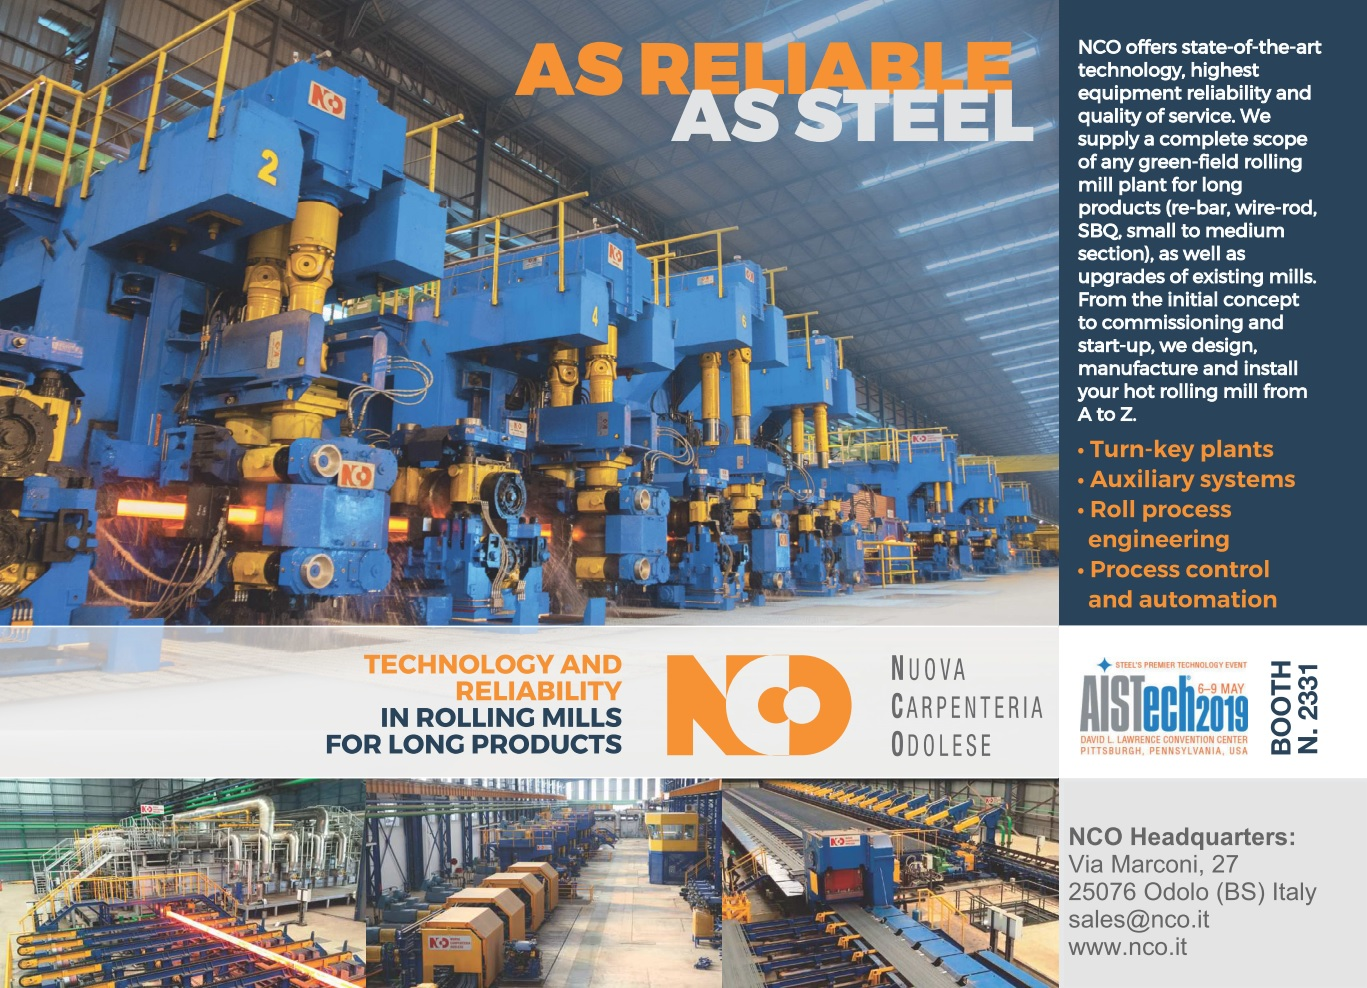 NCO Rolling Mills and the North American market